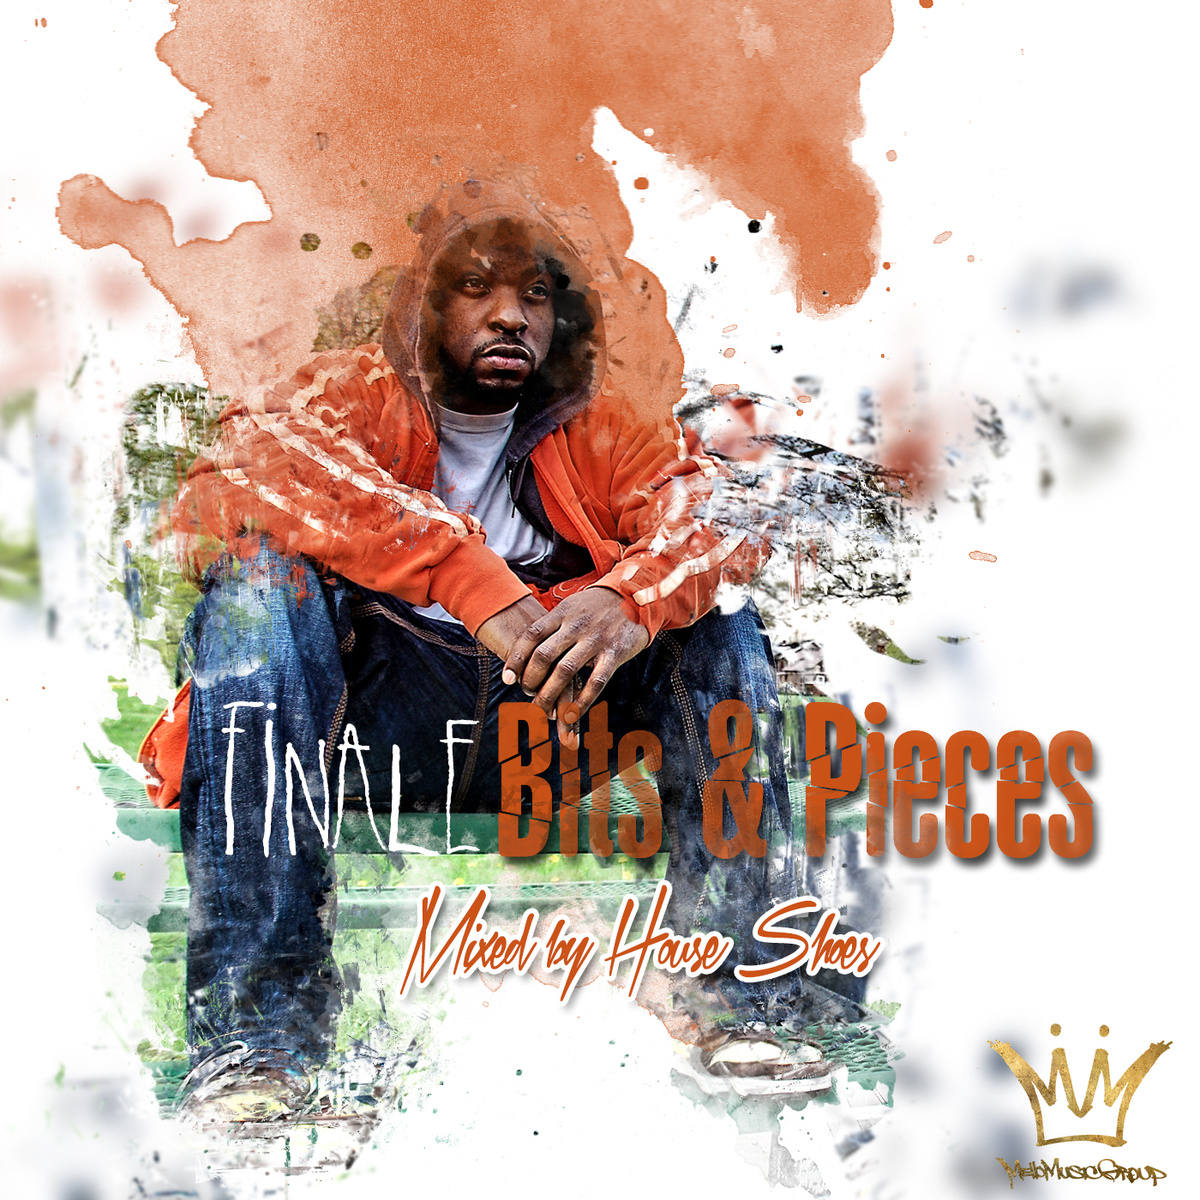 Finale_-_bits___pieces__the_house_shoes_mixtape_